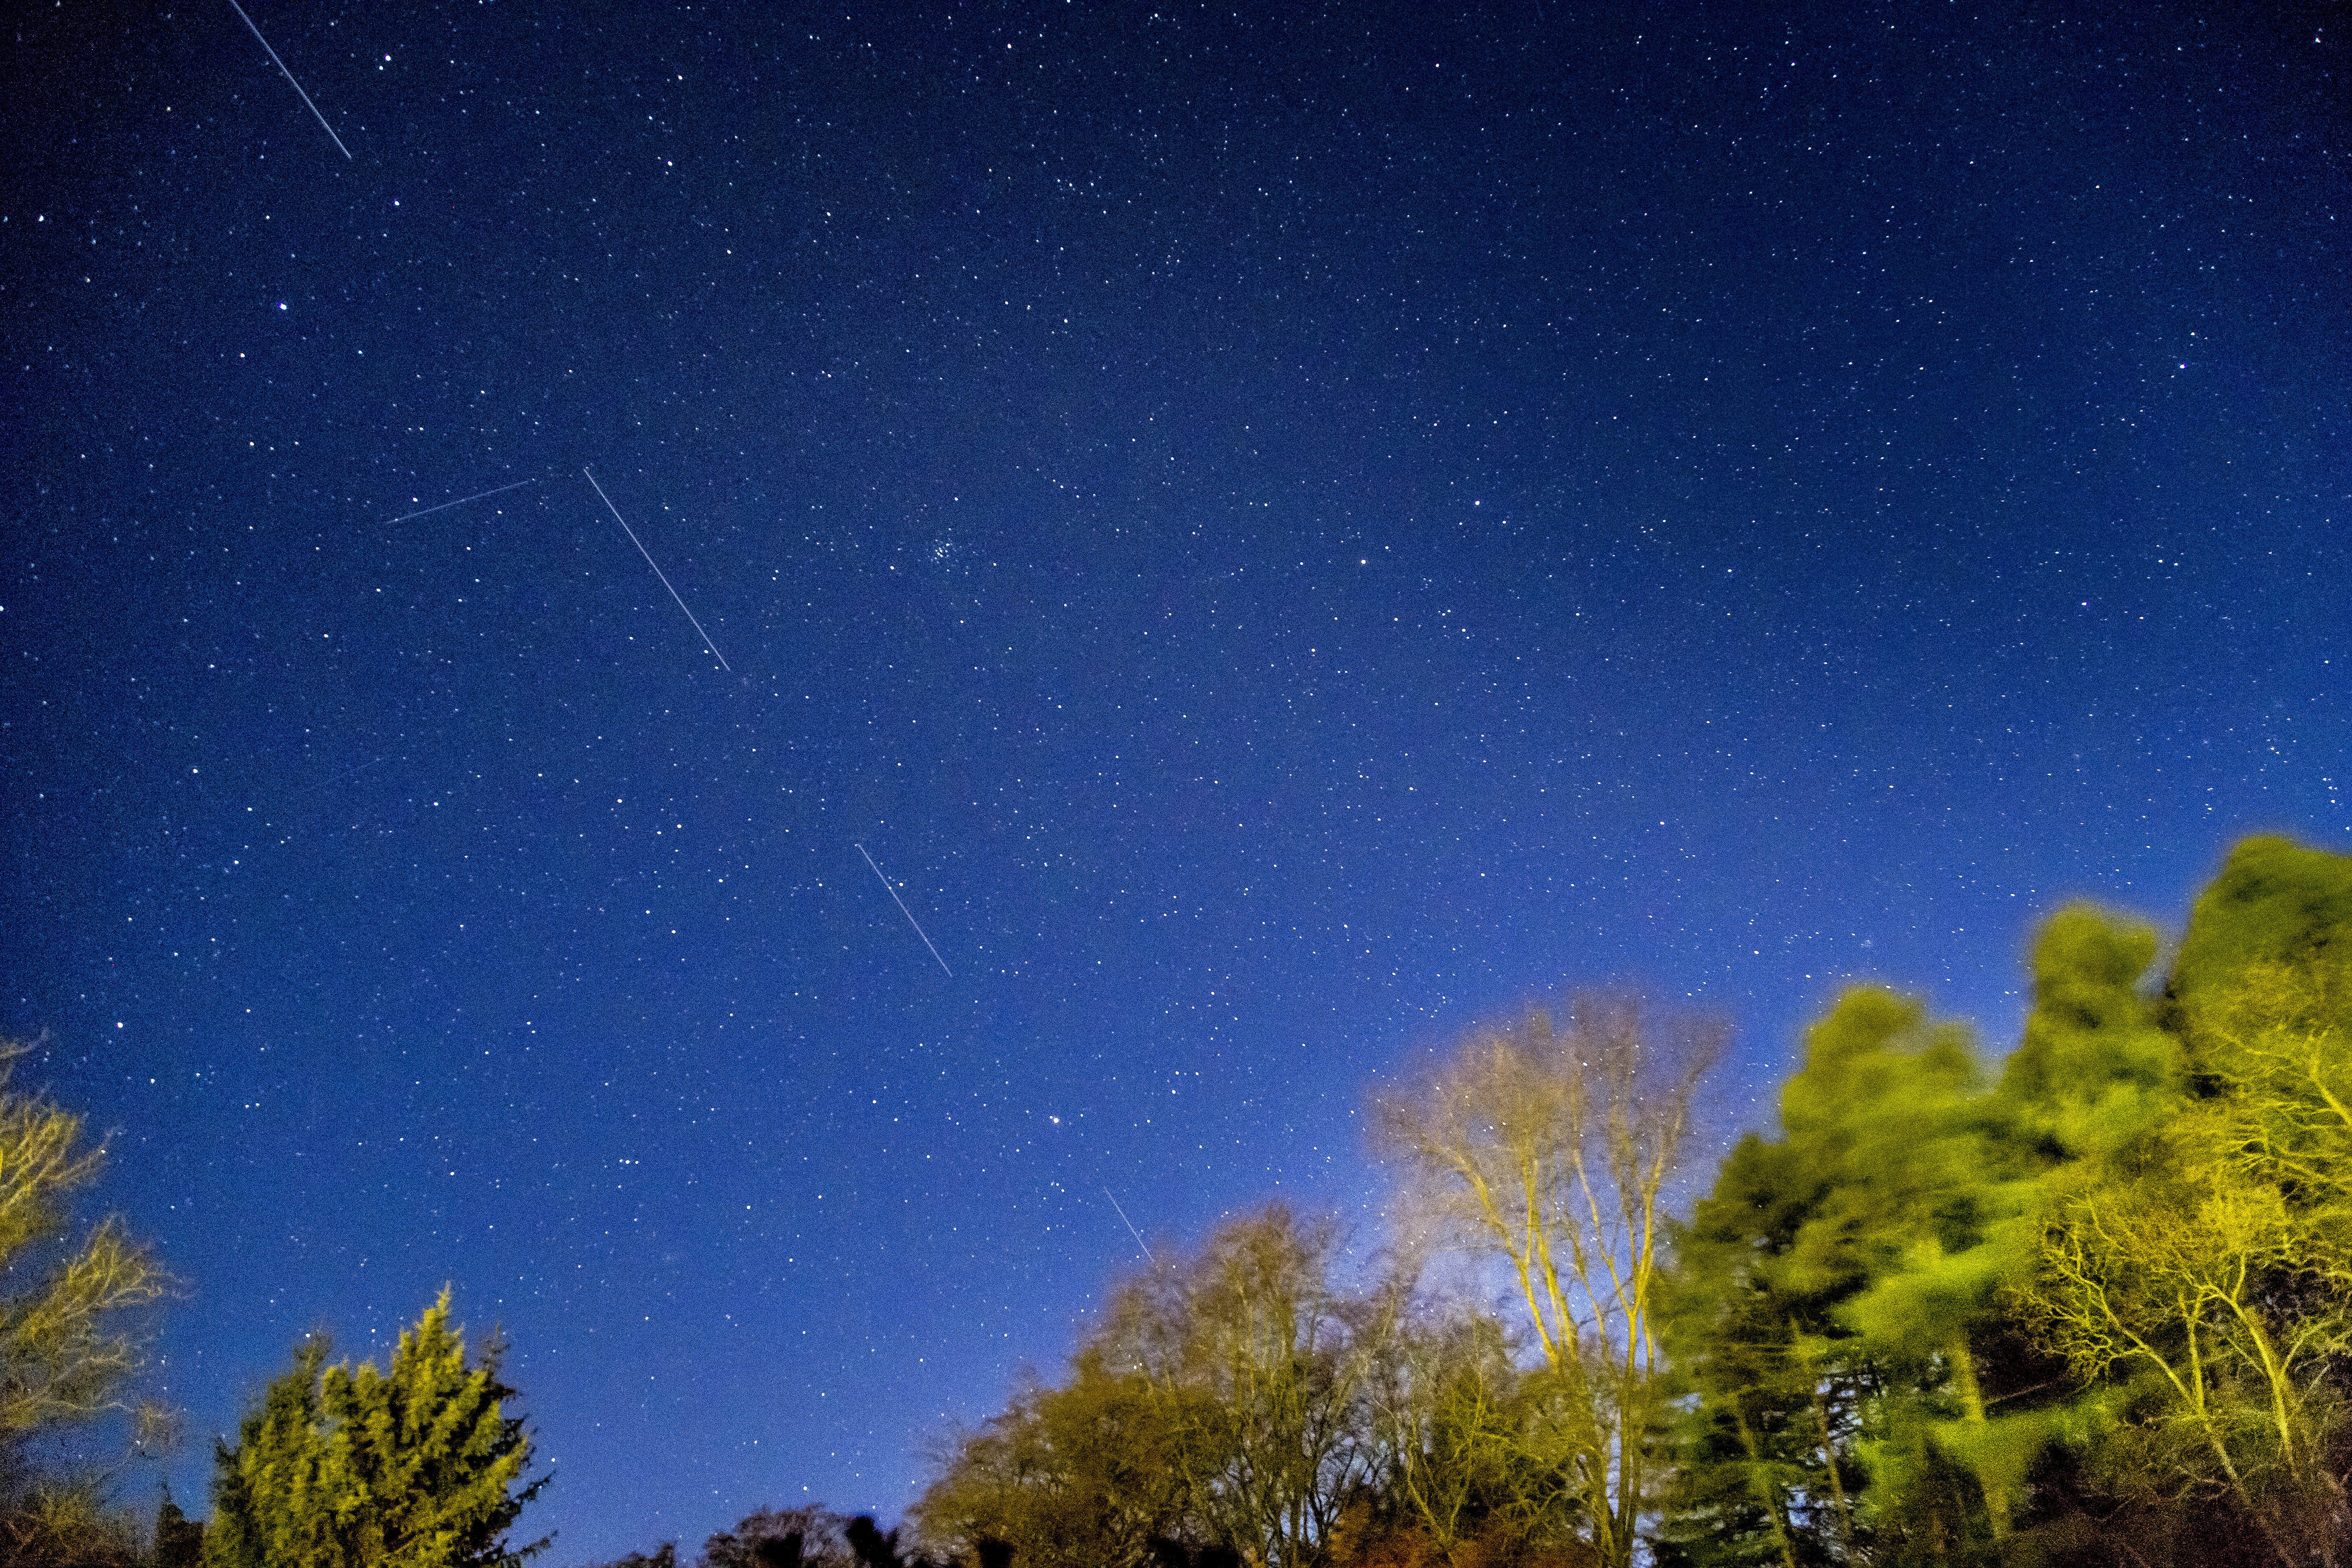 SpaceX Starlink 5 satellites are pictured in the sky seen from Svendborg on South Funen, Denmark April 21, 2020. Picture taken with long exposure. Ritzau Scanpix/Mads Claus Rasmussen via REUTERS